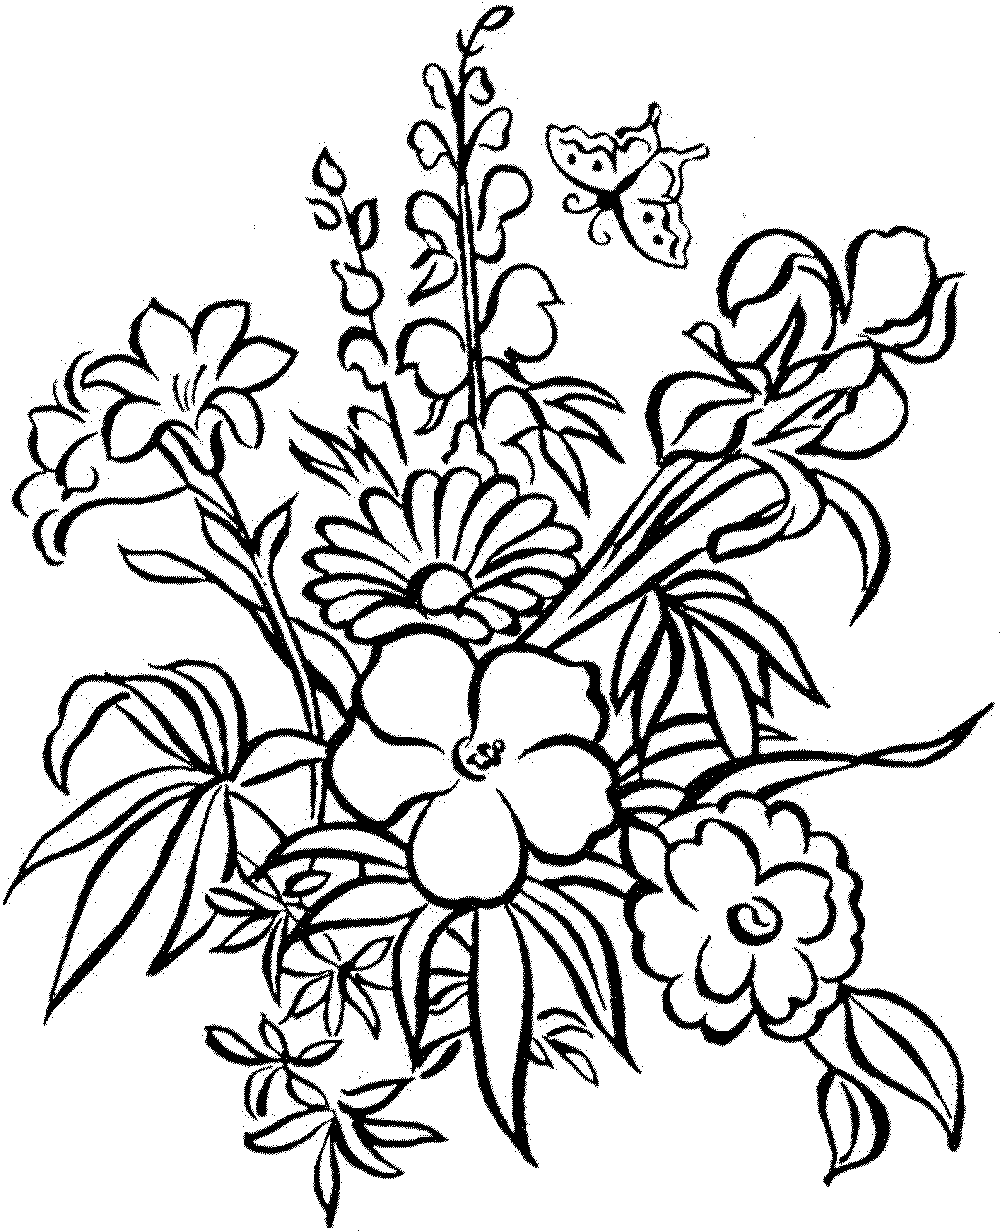 printable flower coloring pages detailed flower coloring pages to download and print for free printable pages coloring flower